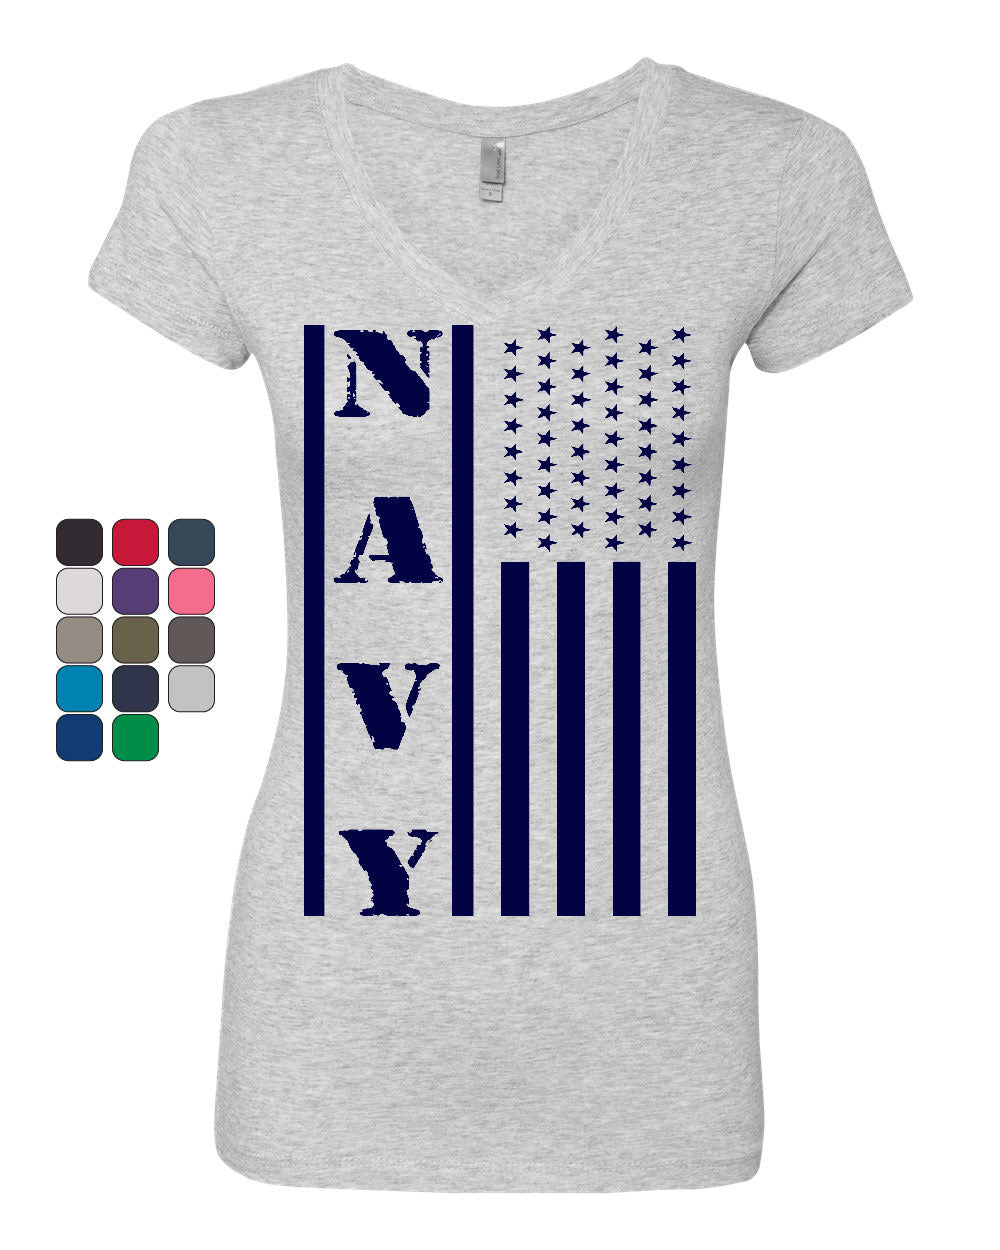 Navy American Flag Women/'s V-Neck T-Shirt Patriotic Stars and Stripes Military